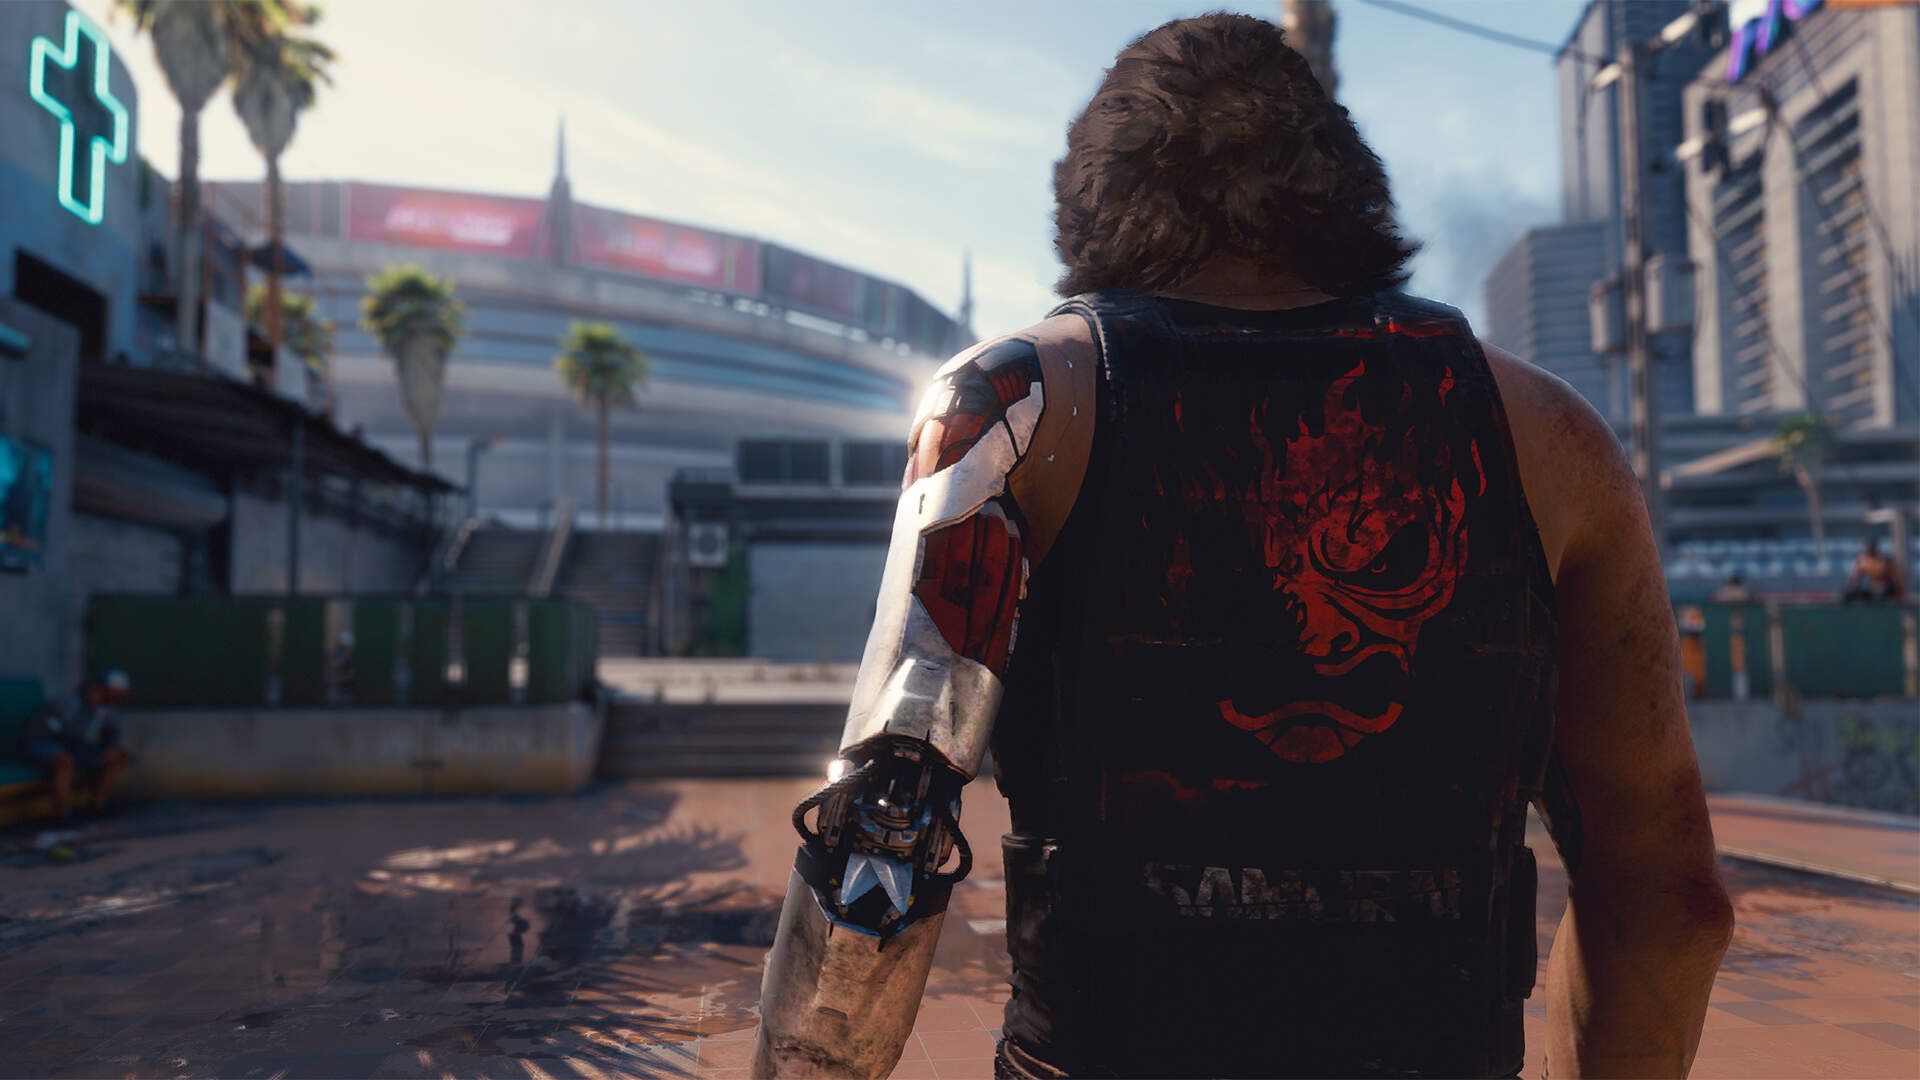 Cyberpunk 2077 Quest Director on The Witcher 3 Comparisons, Life Paths, and Keanu